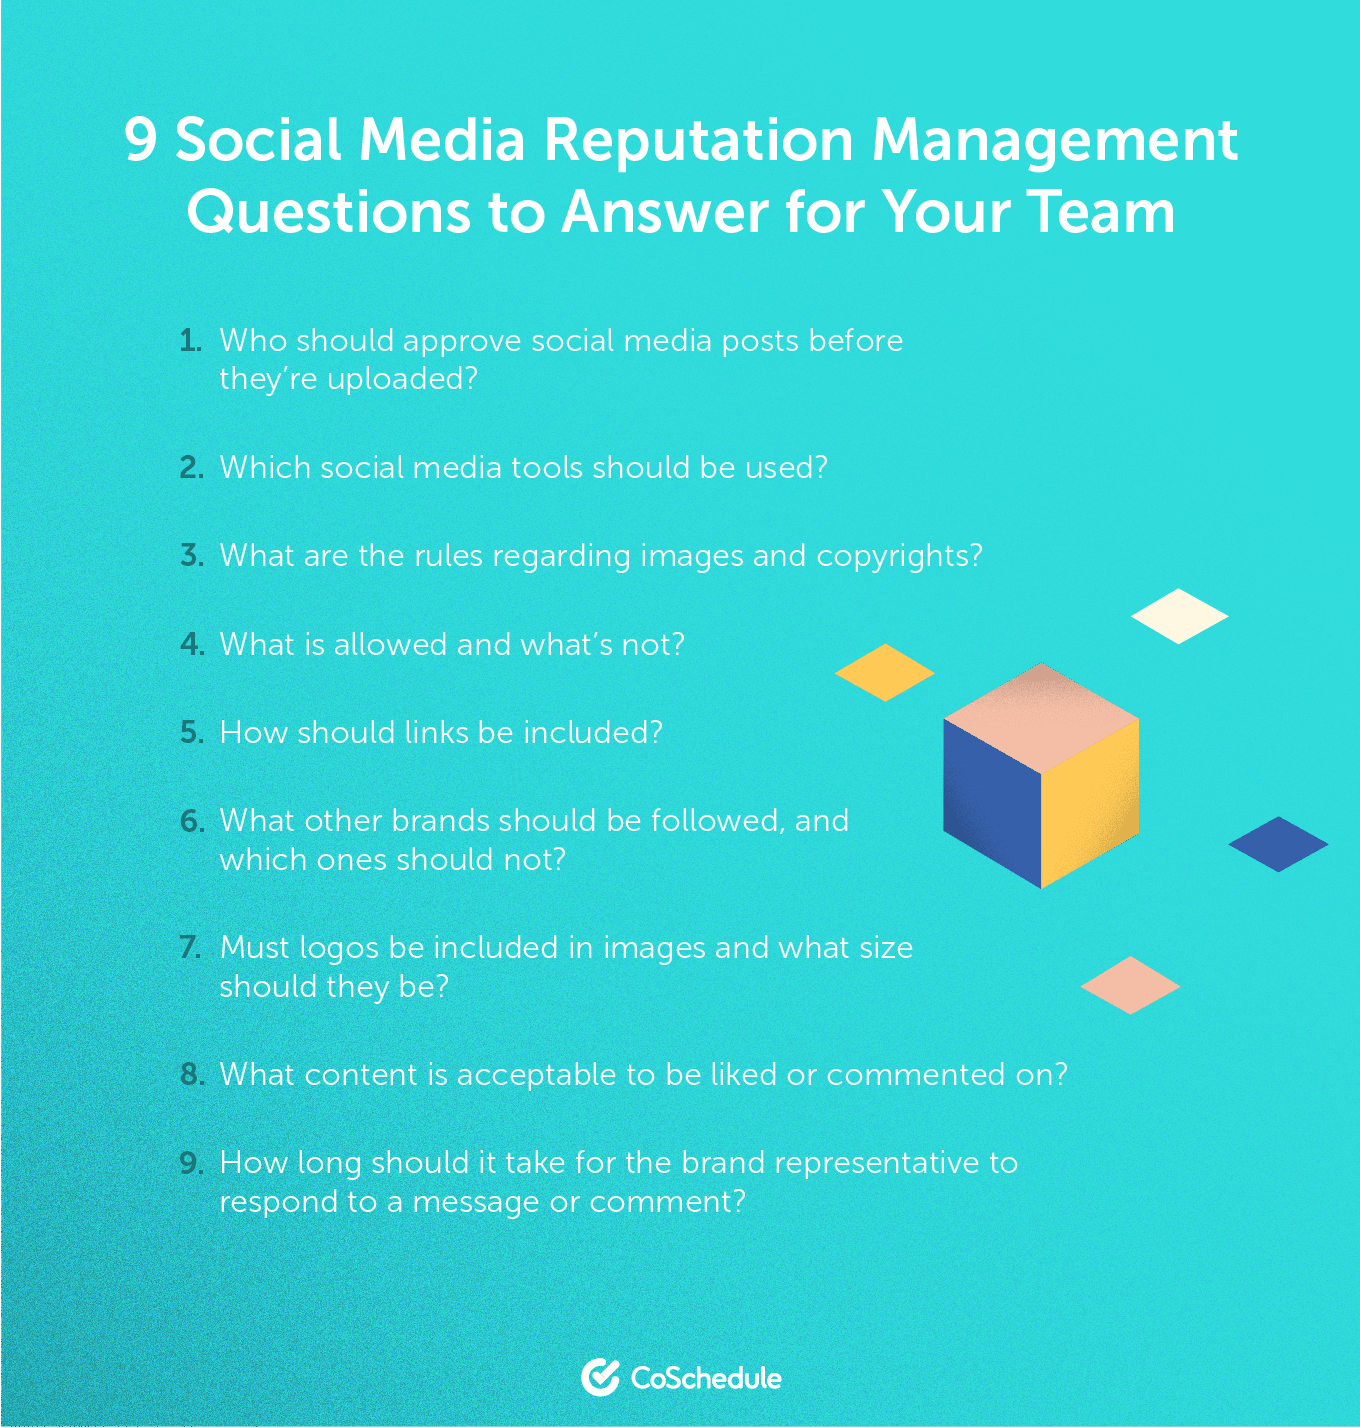 List of 9 questions about social media reputation management